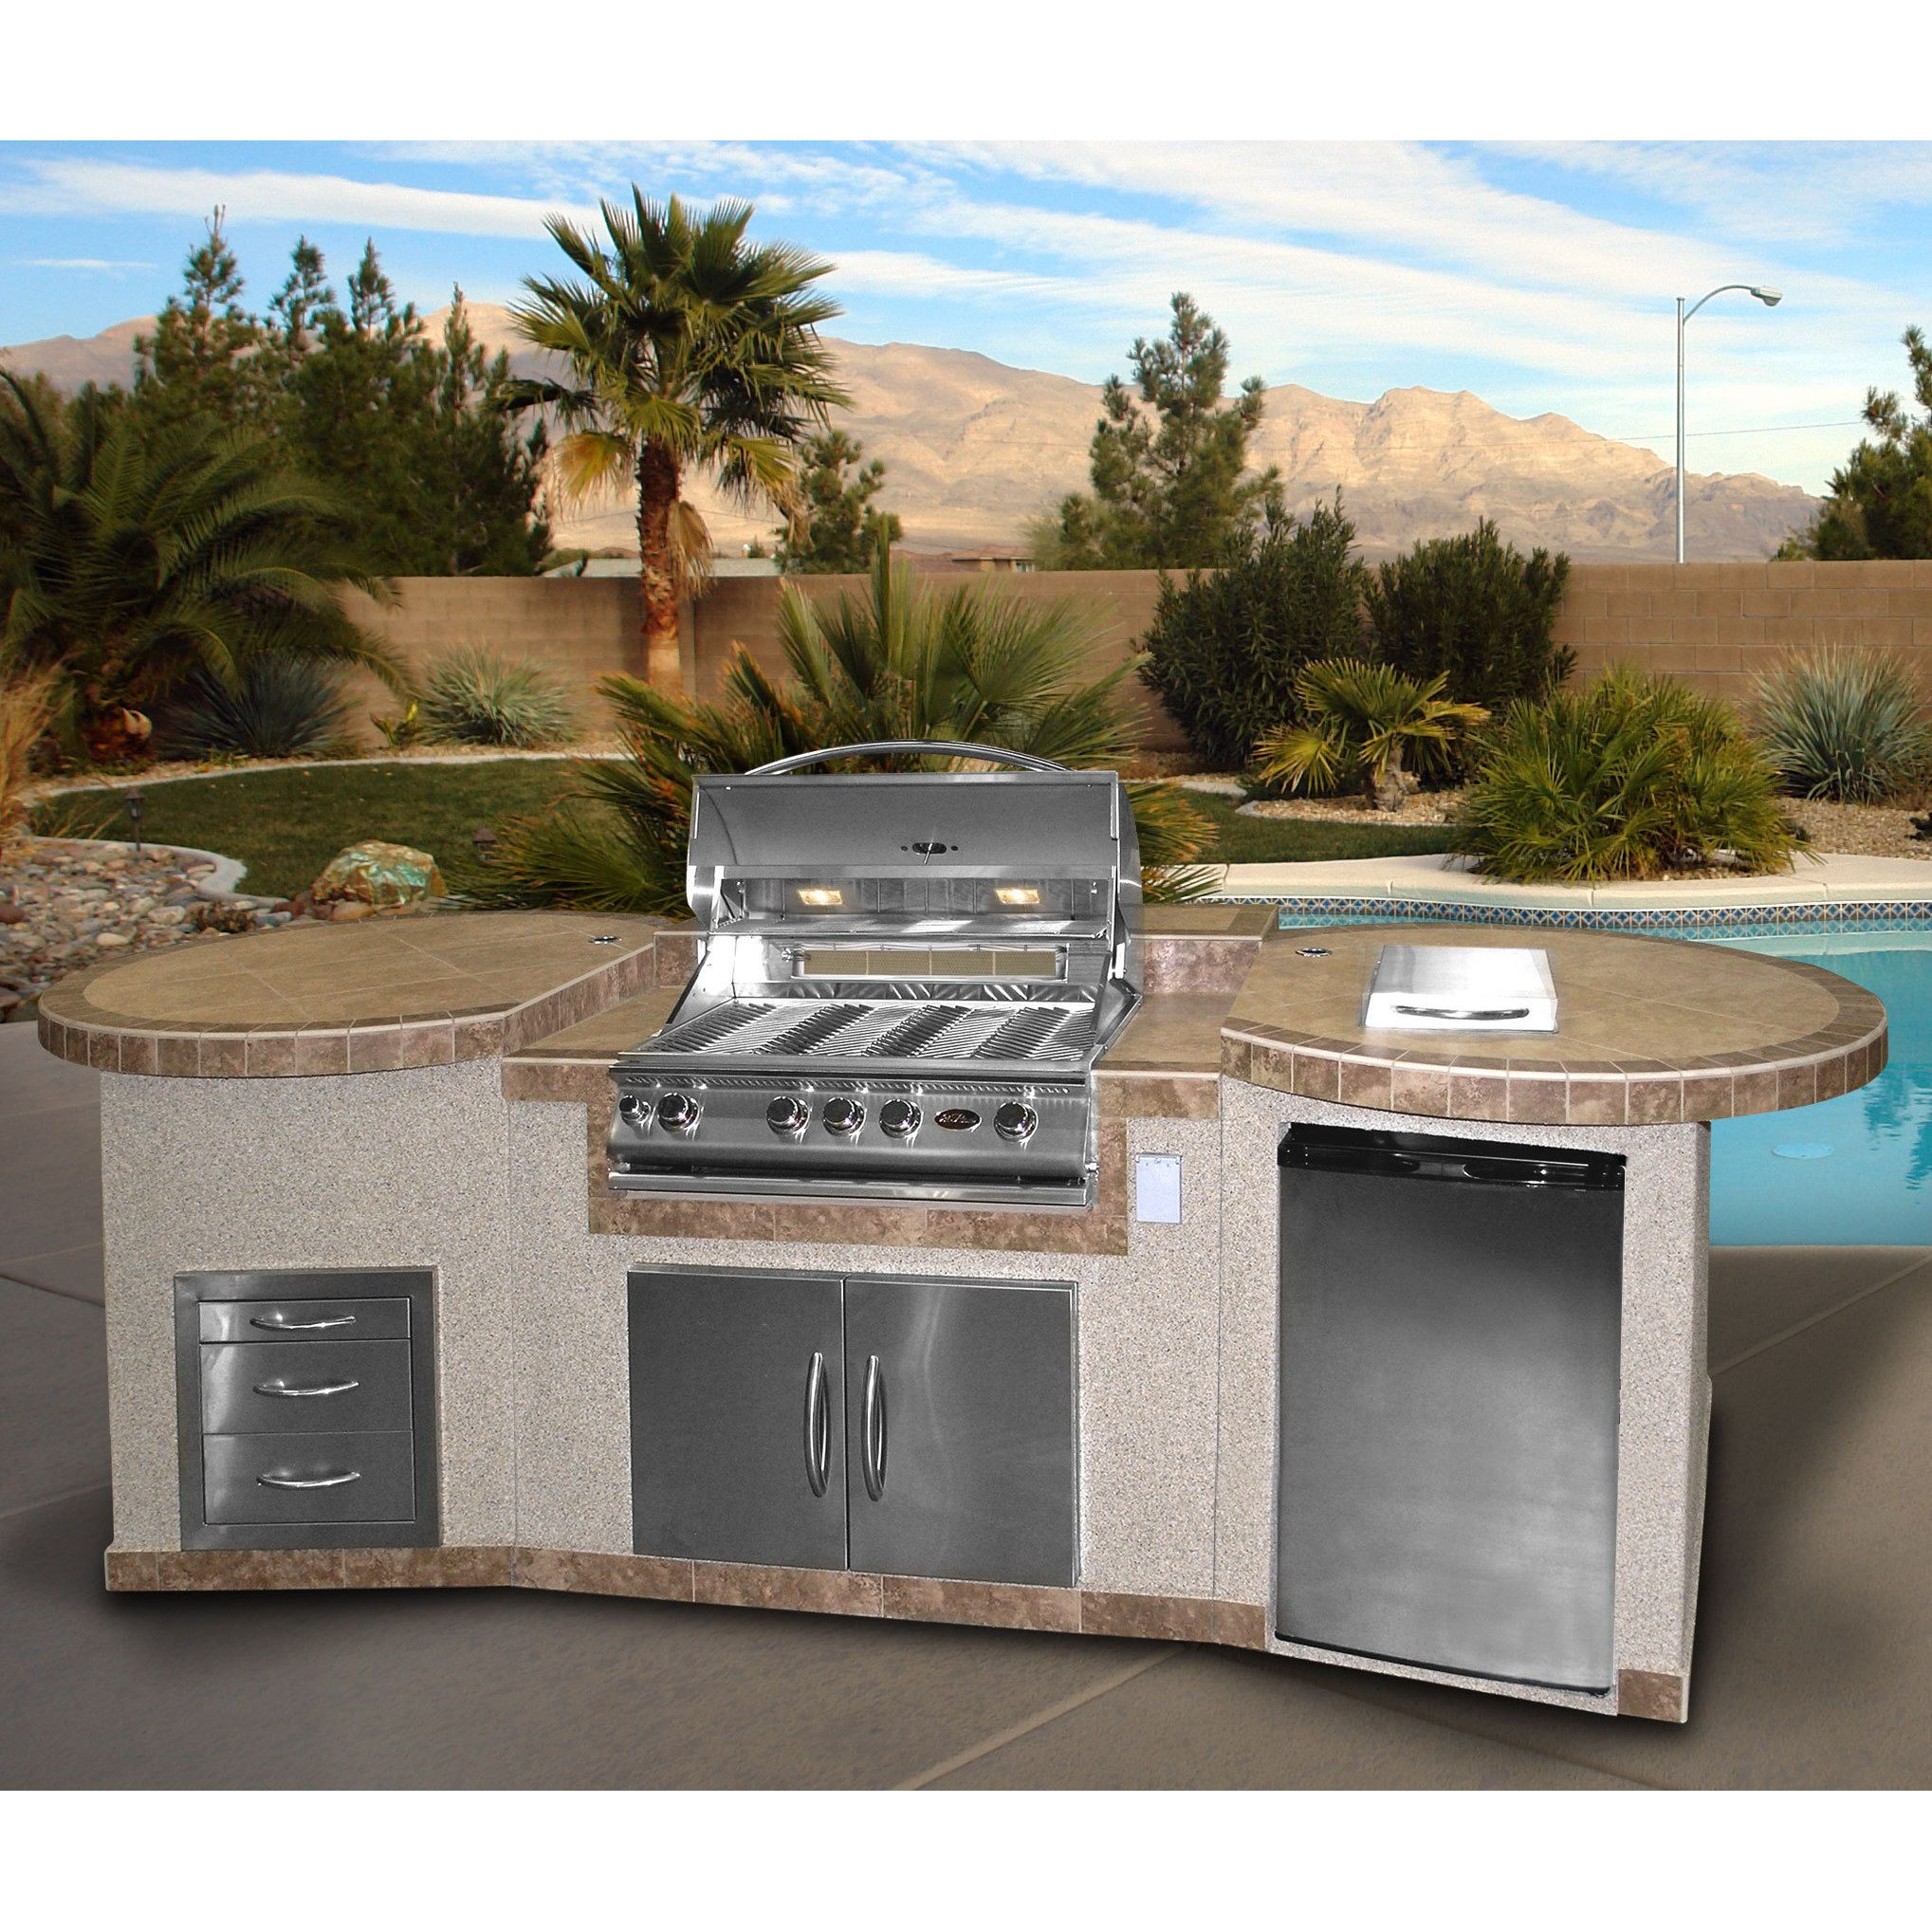 Outdoor Electrical Outlets For Kitchens Not Lossing Wiring Diagram Up This Barbecue Island Includes A 60 000 Btu 4 Burner Stainless Steel Rh Pinterest Com Countertop Wood Floor Outlet